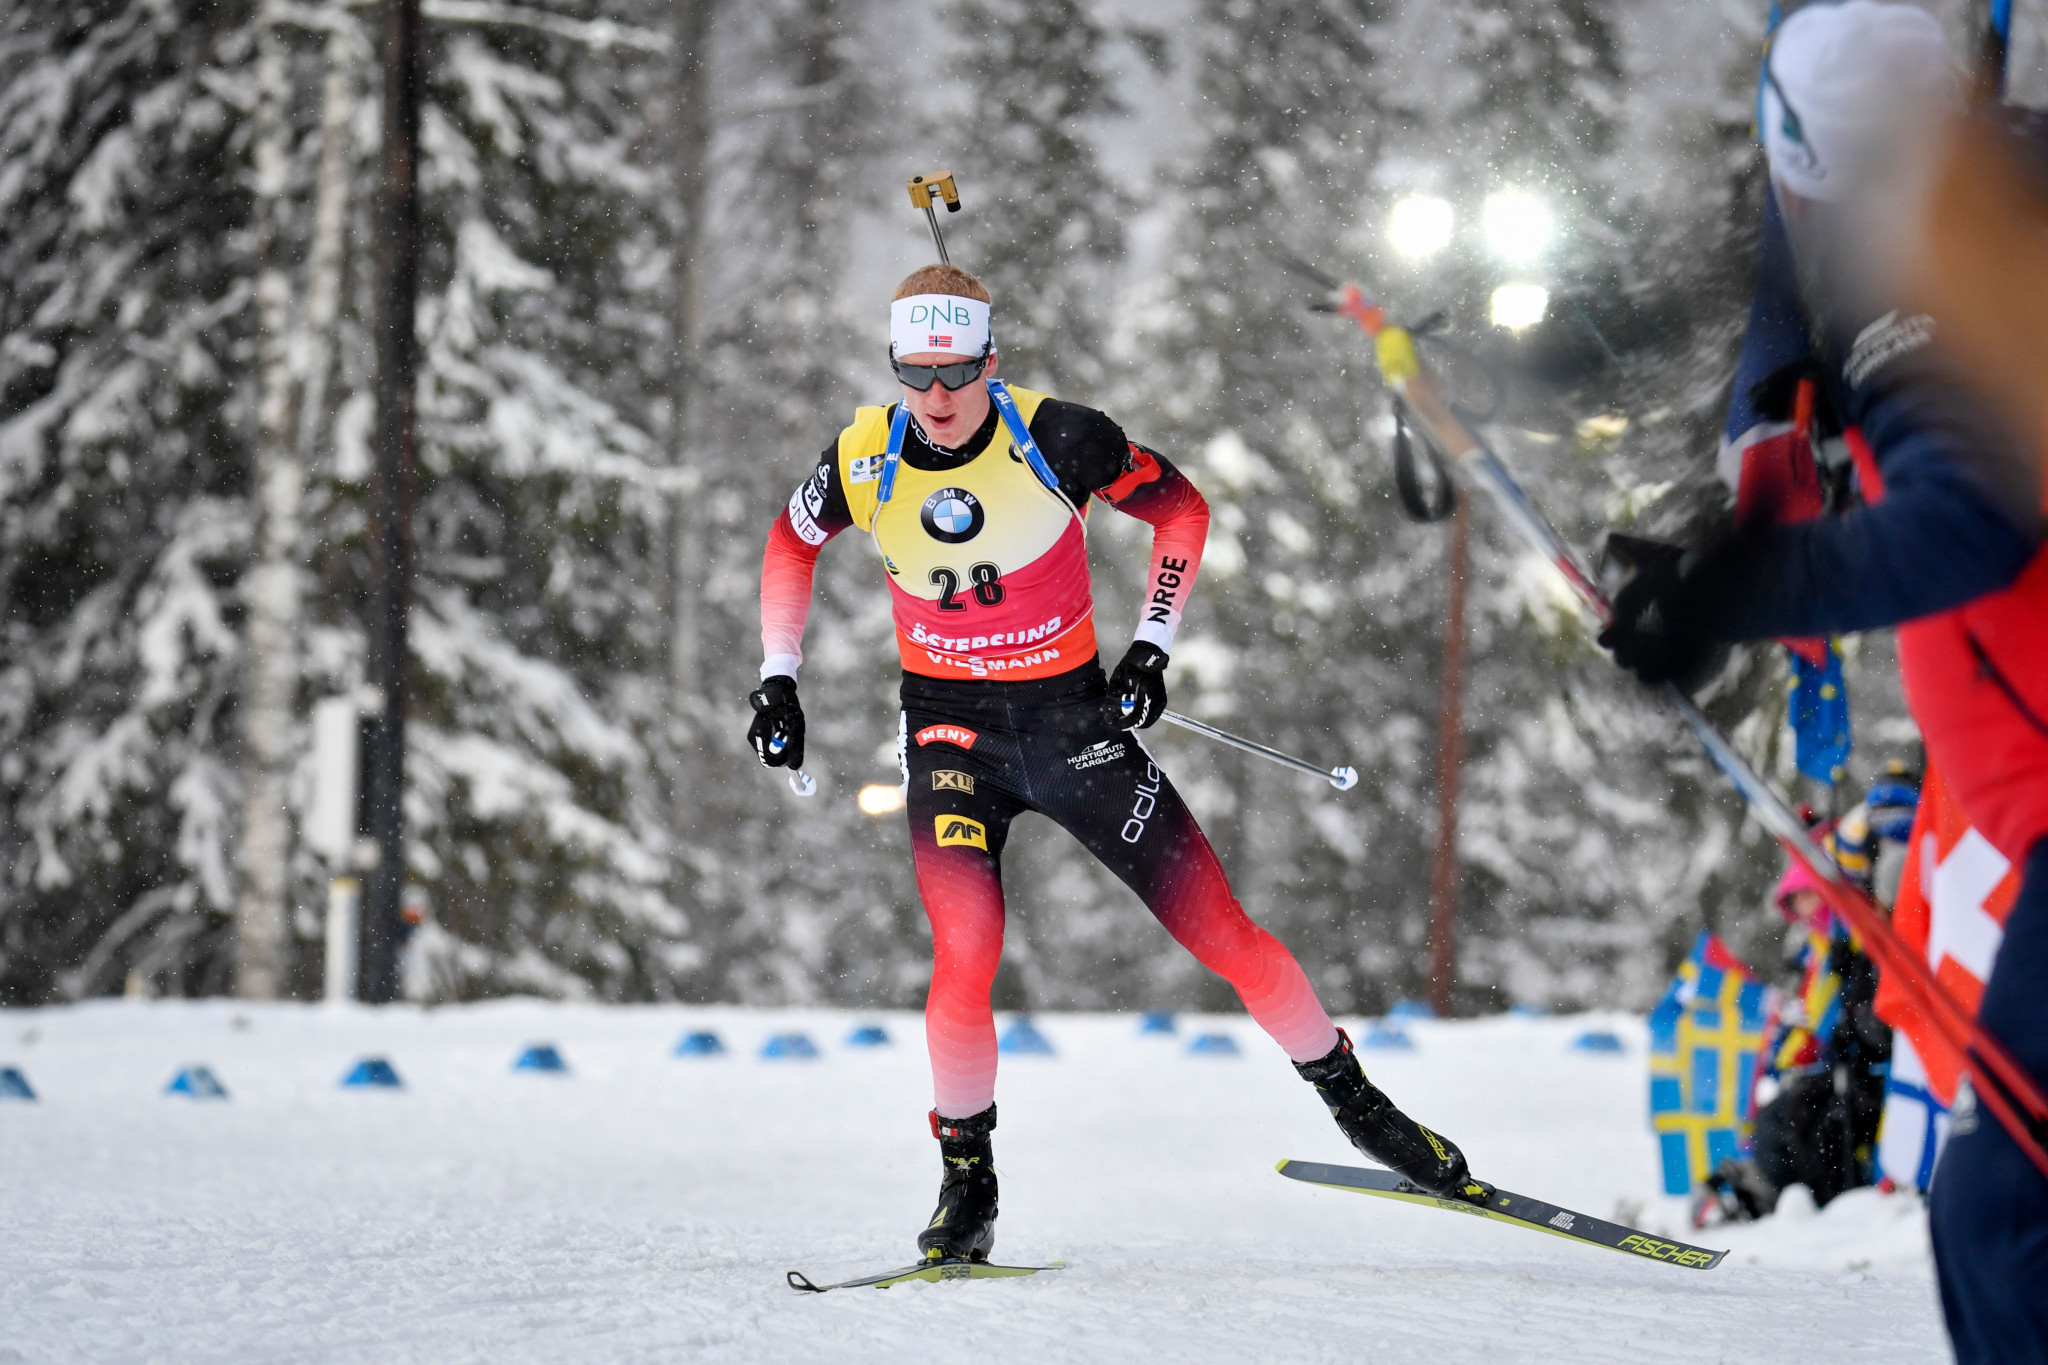 Bø surges to sprint title at IBU World Championships